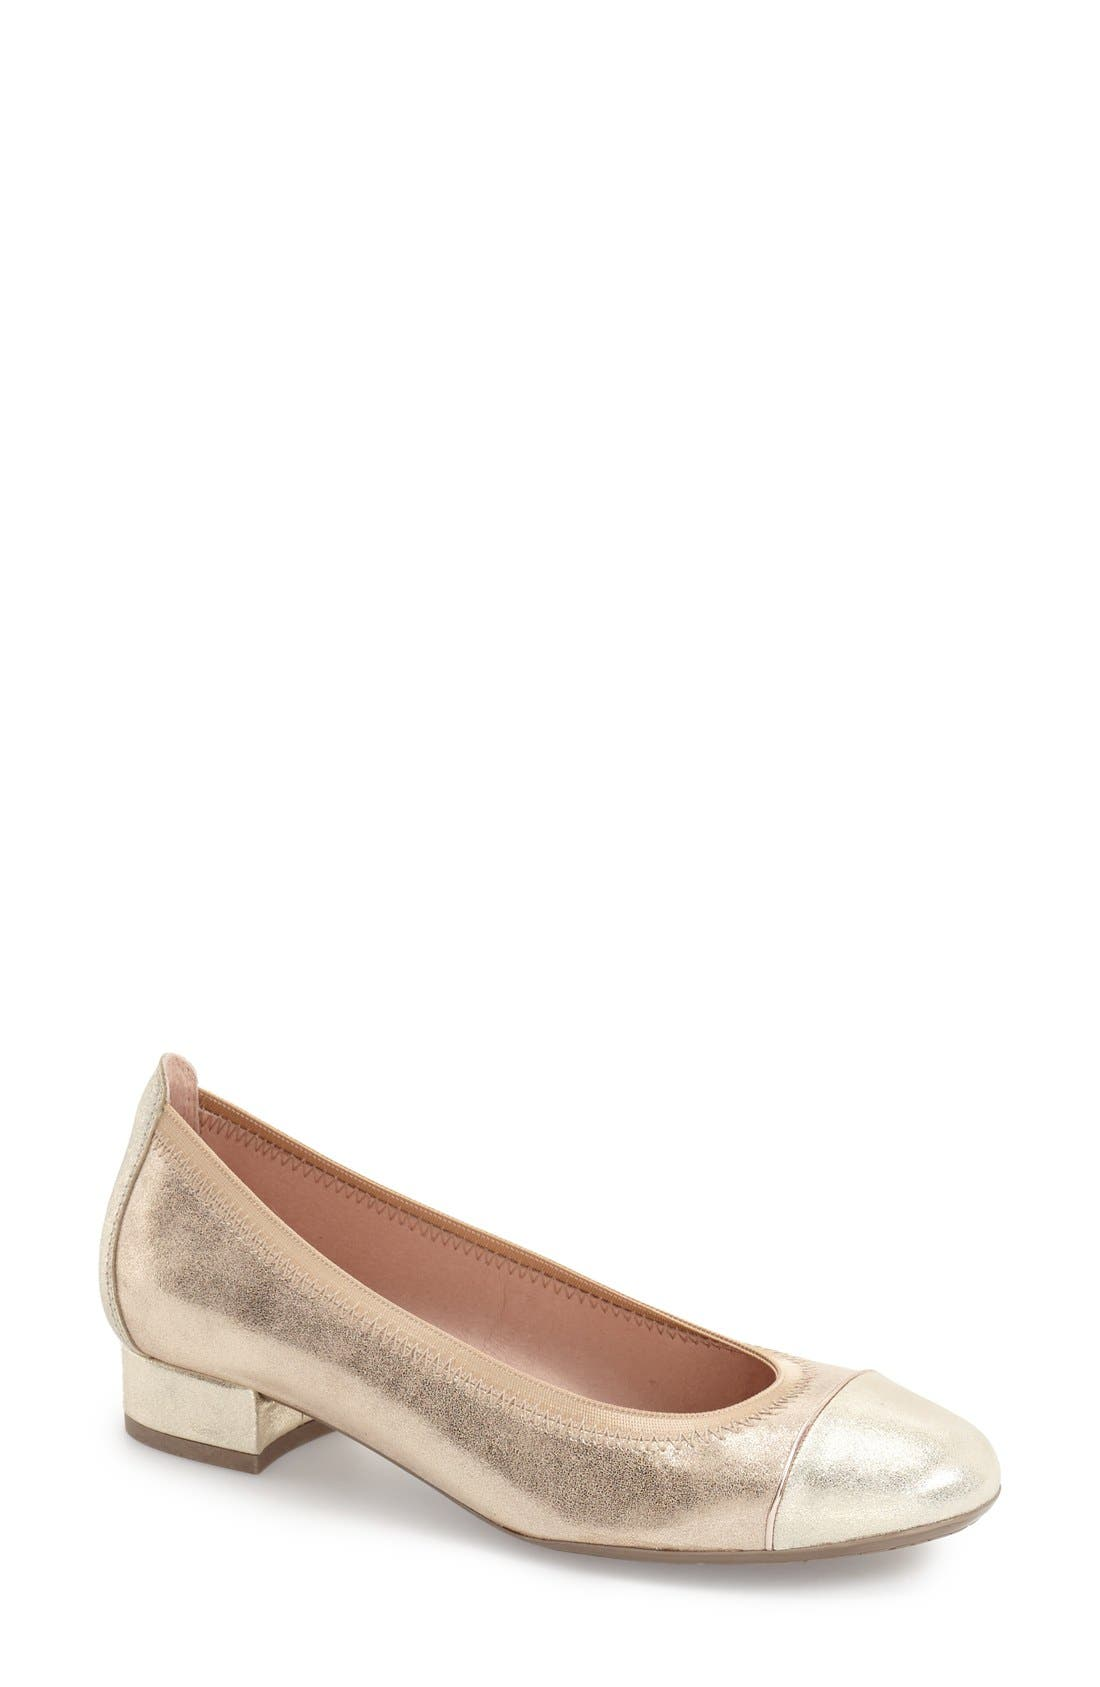 Alternate Image 1 Selected - Hispanitas 'Cali' Metallic Cap Toe Pump (Women)